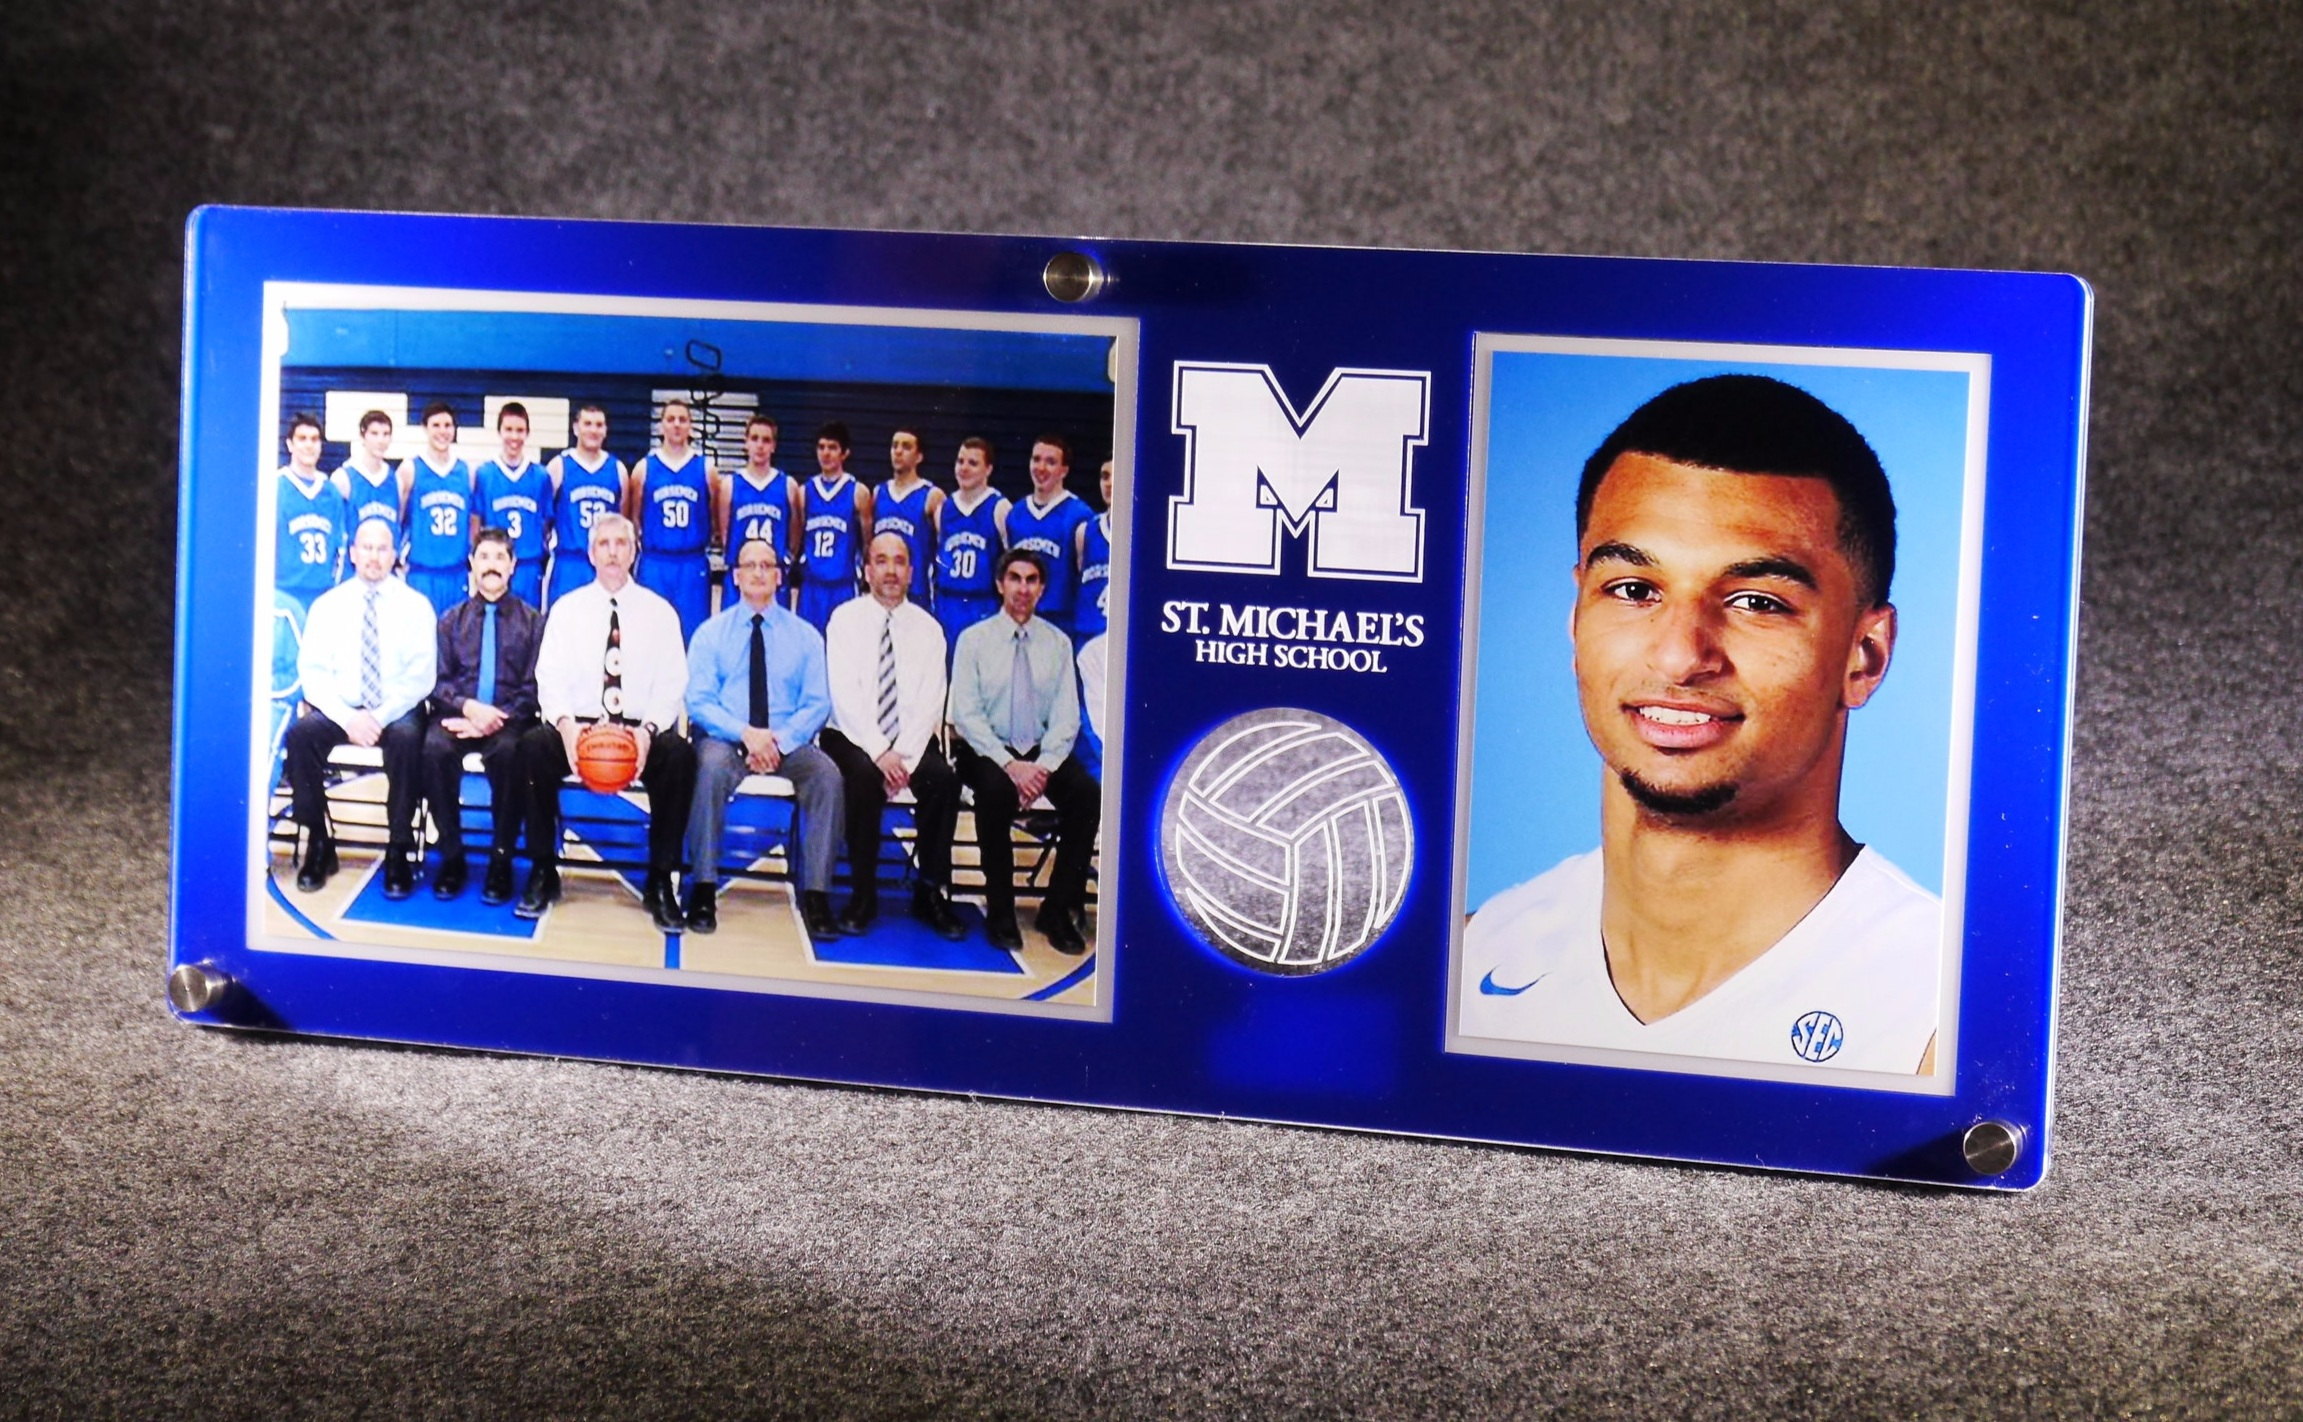 5x7 Team/3.5x5 Individual Dual Photo frame - team colors, custom etch/color enhancing, cut-through of ball/object  Contact us for pricing information.